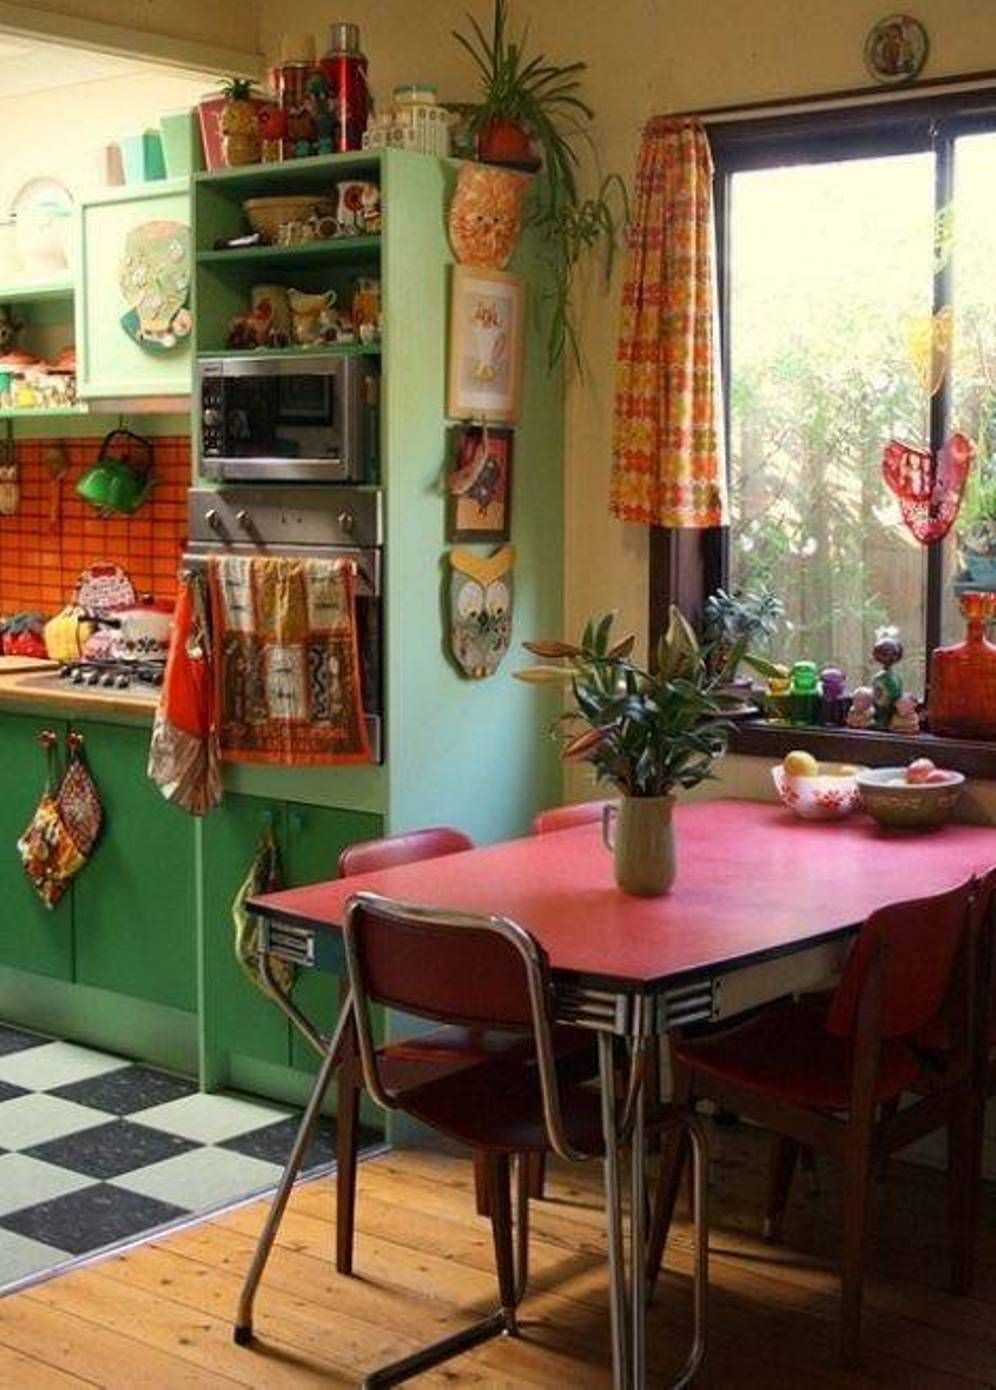 Vintage home interior pictures interior bohemian style of home interior design with retro - Vintage looking home decor gallery ...